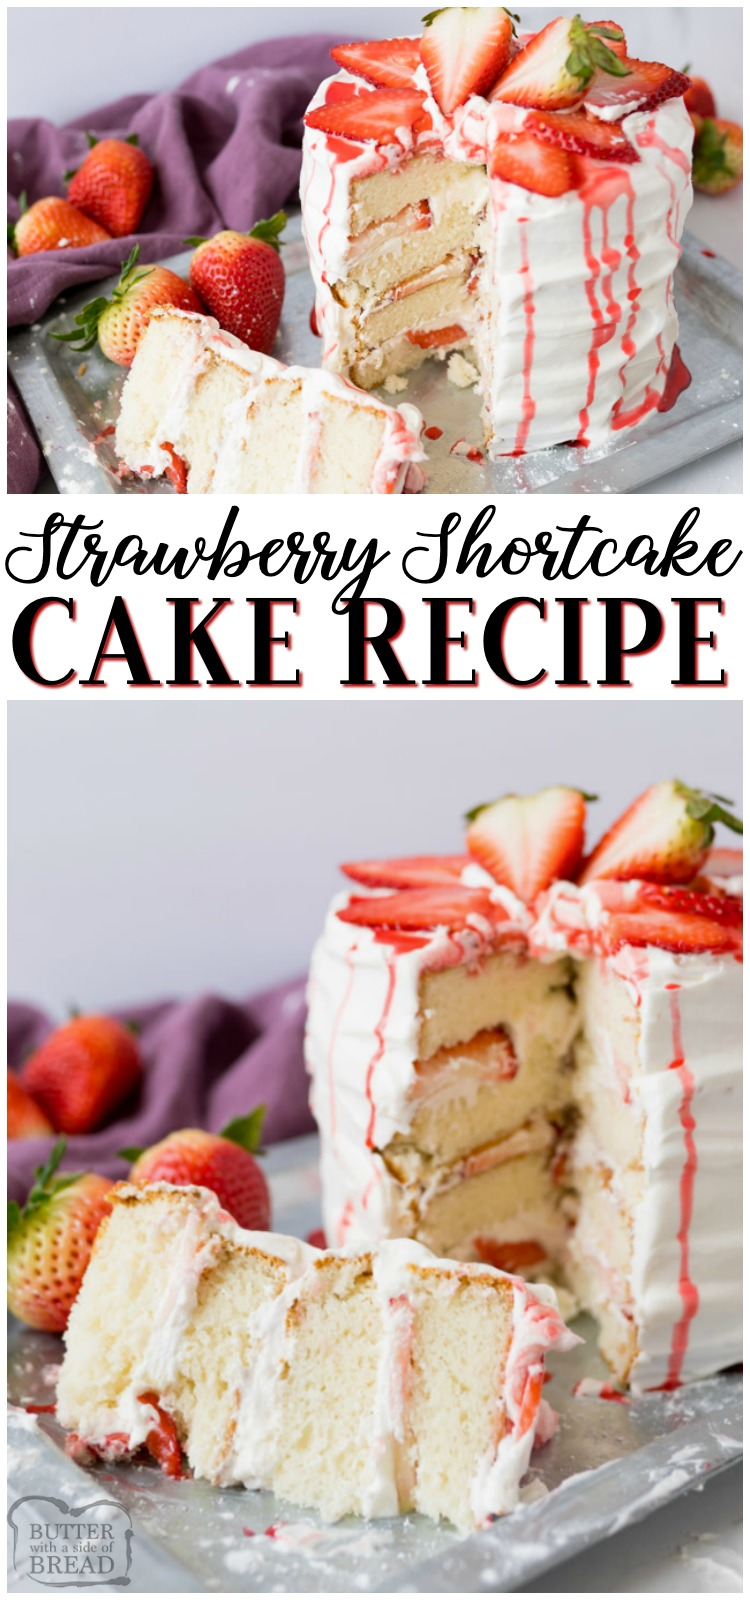 Strawberry Shortcake Cake is a gorgeous vanilla cake filled with whipped vanilla frosting and fresh strawberries. Lovely strawberry shortcake layers make up this easy & elegant strawberry cake.